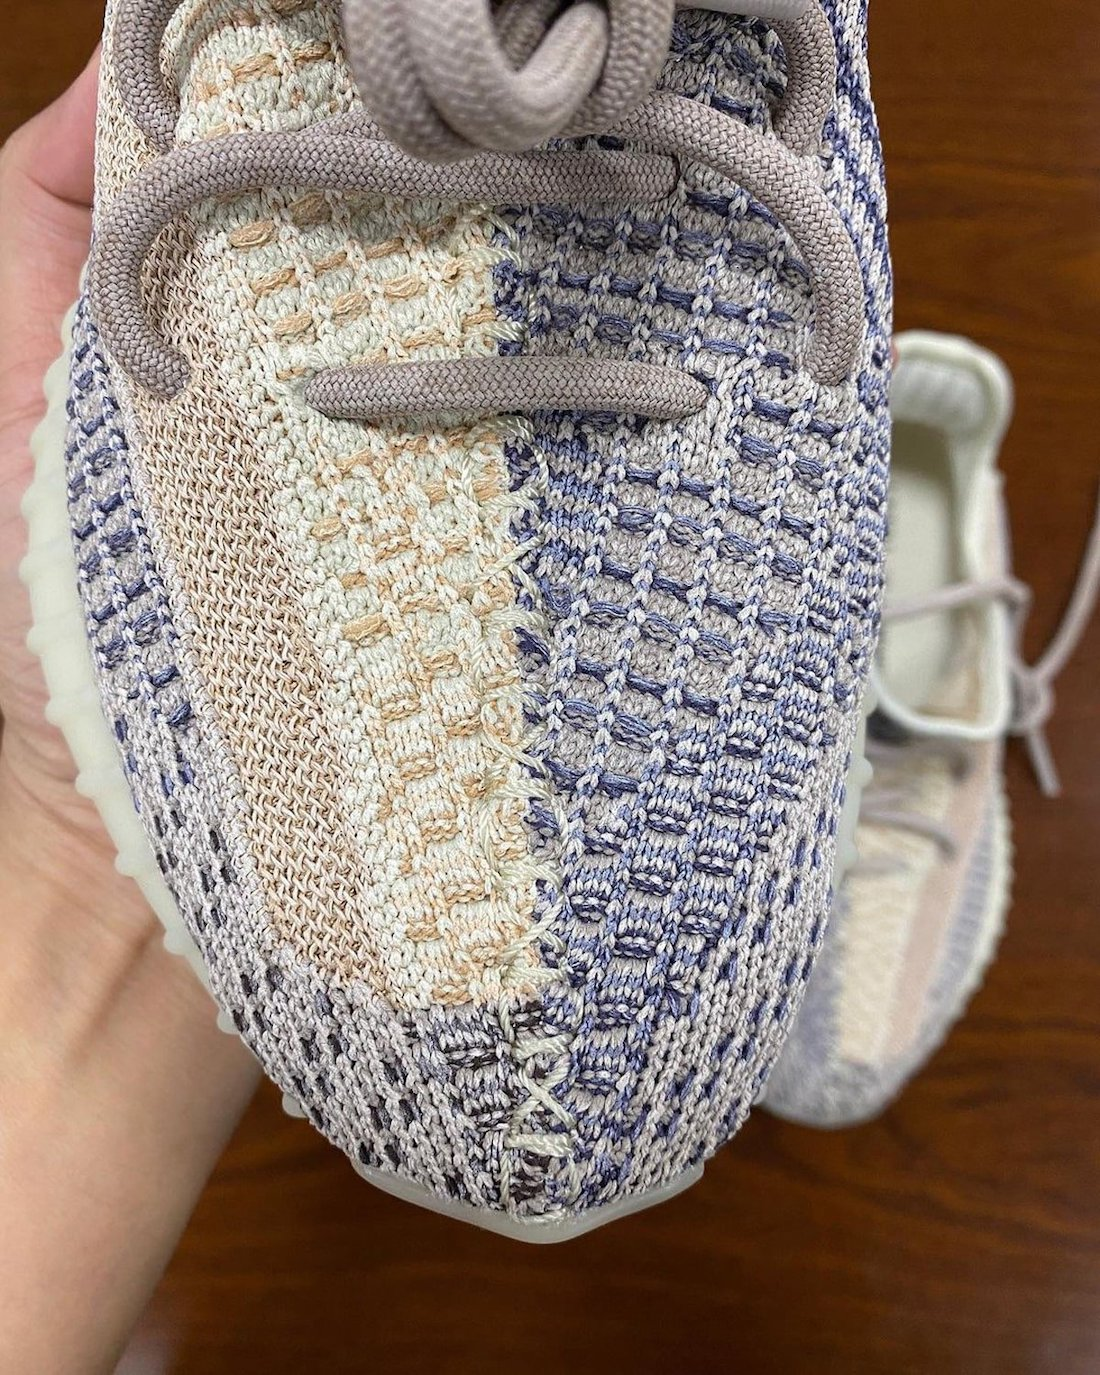 adidas Yeezy Boost 350 V2 Ash Pearl Release Date